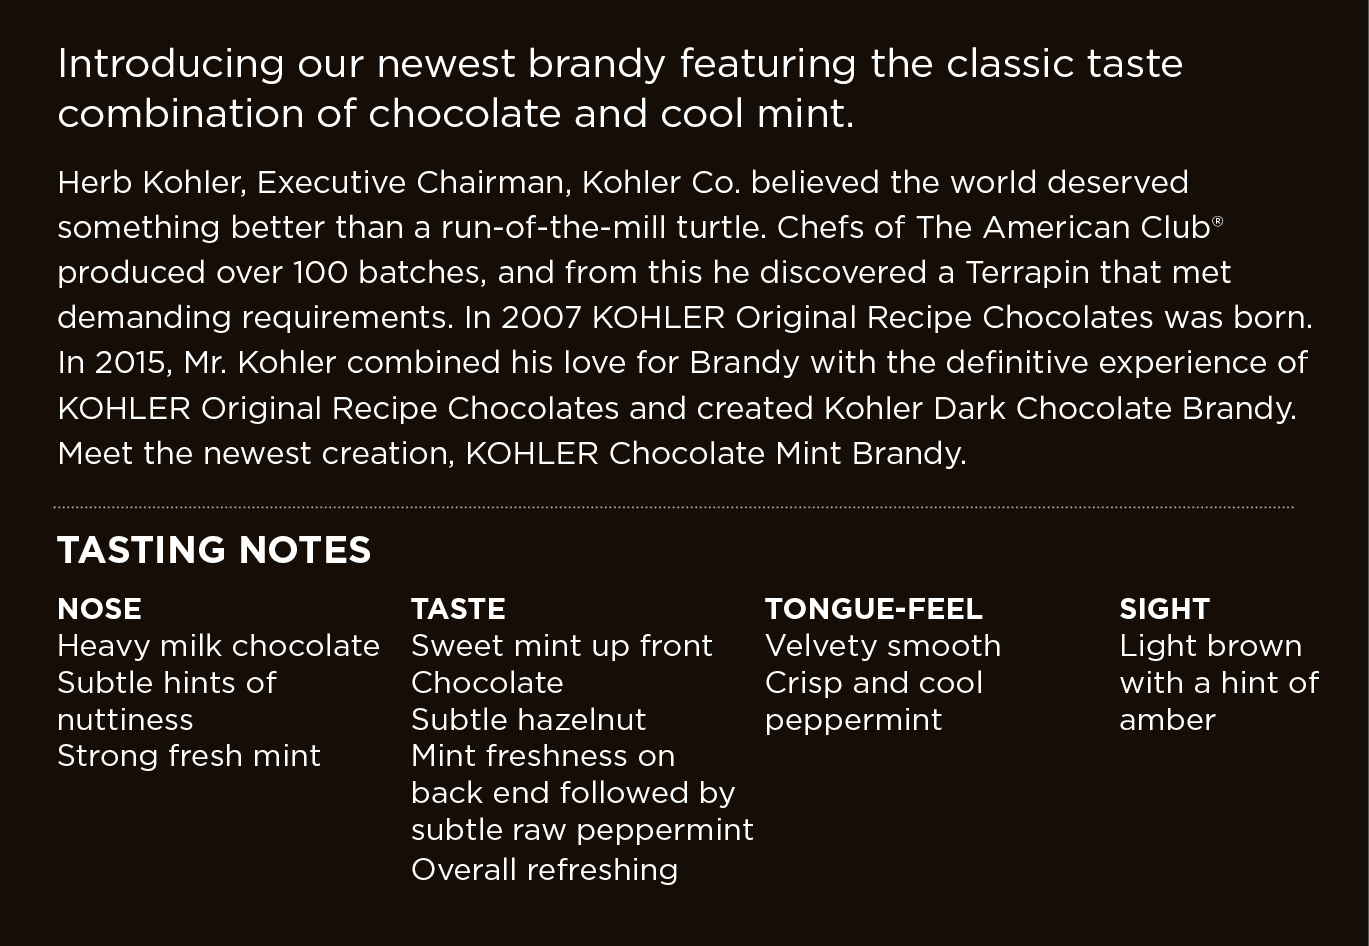 Introducing our newest brandy featuring the classic combination of chocolate and cool mint